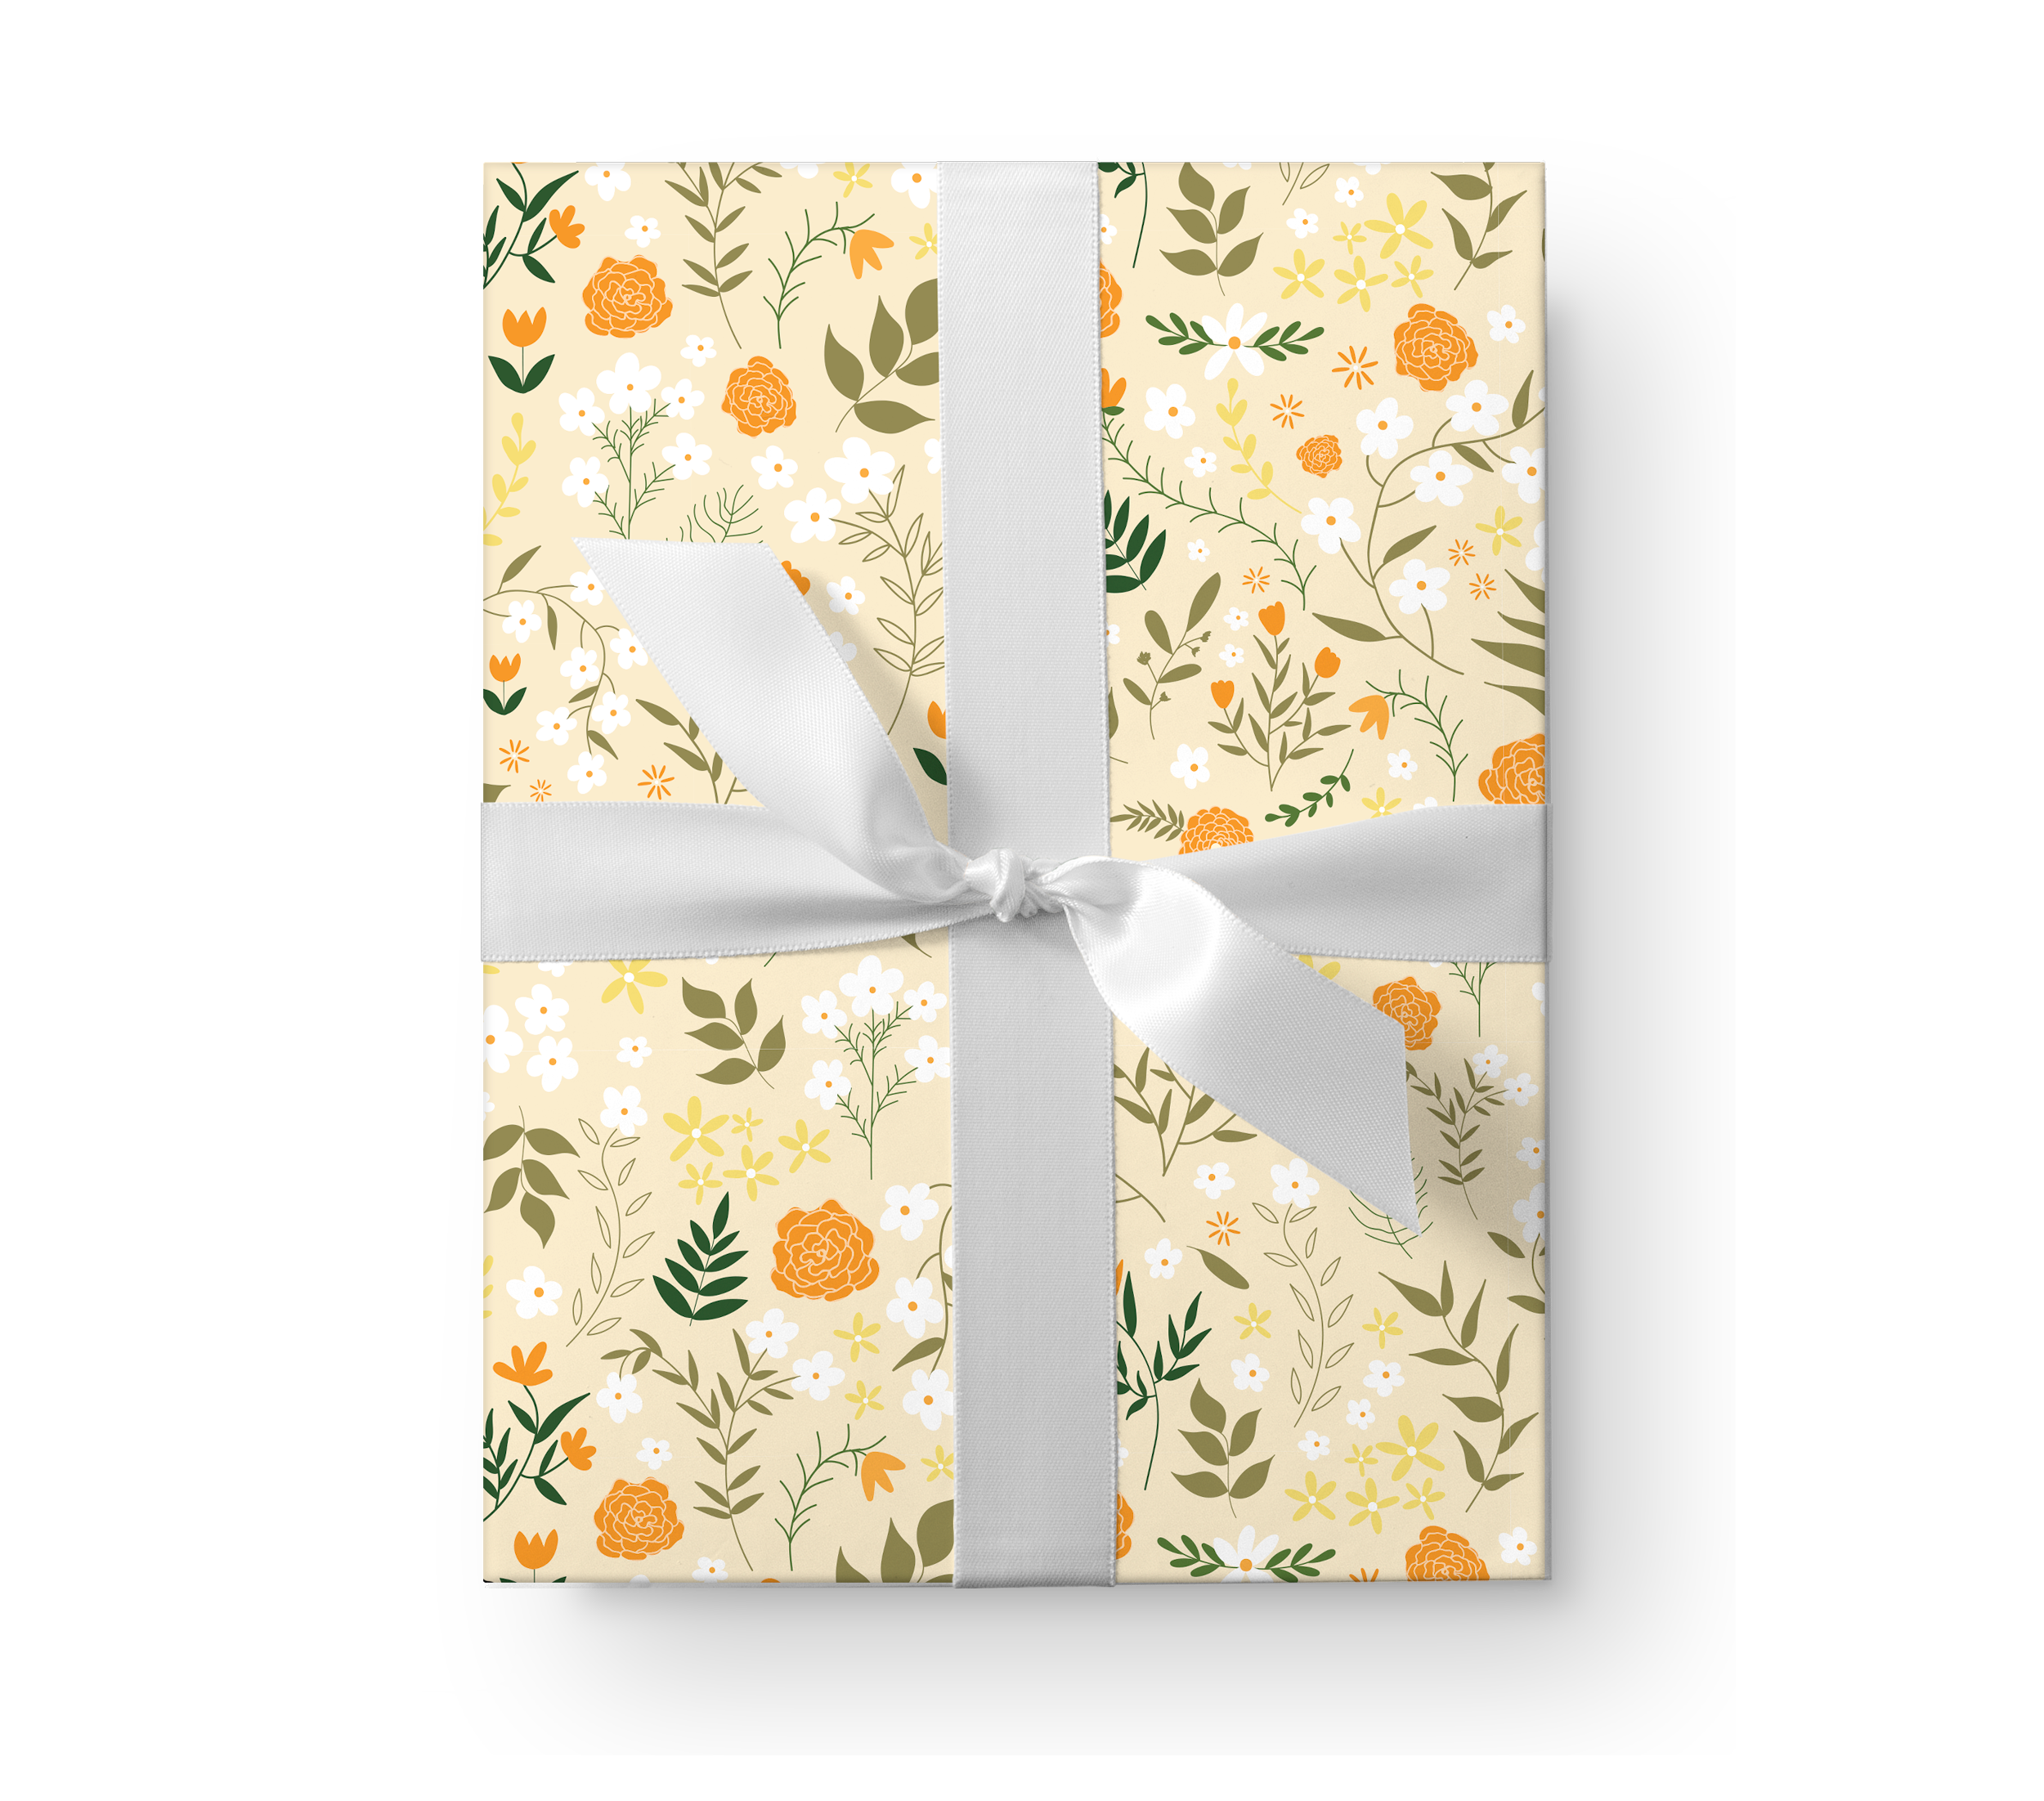 Illustrated wrapping paper gift box with a lovely orange floral pattern on a pale yellow background.